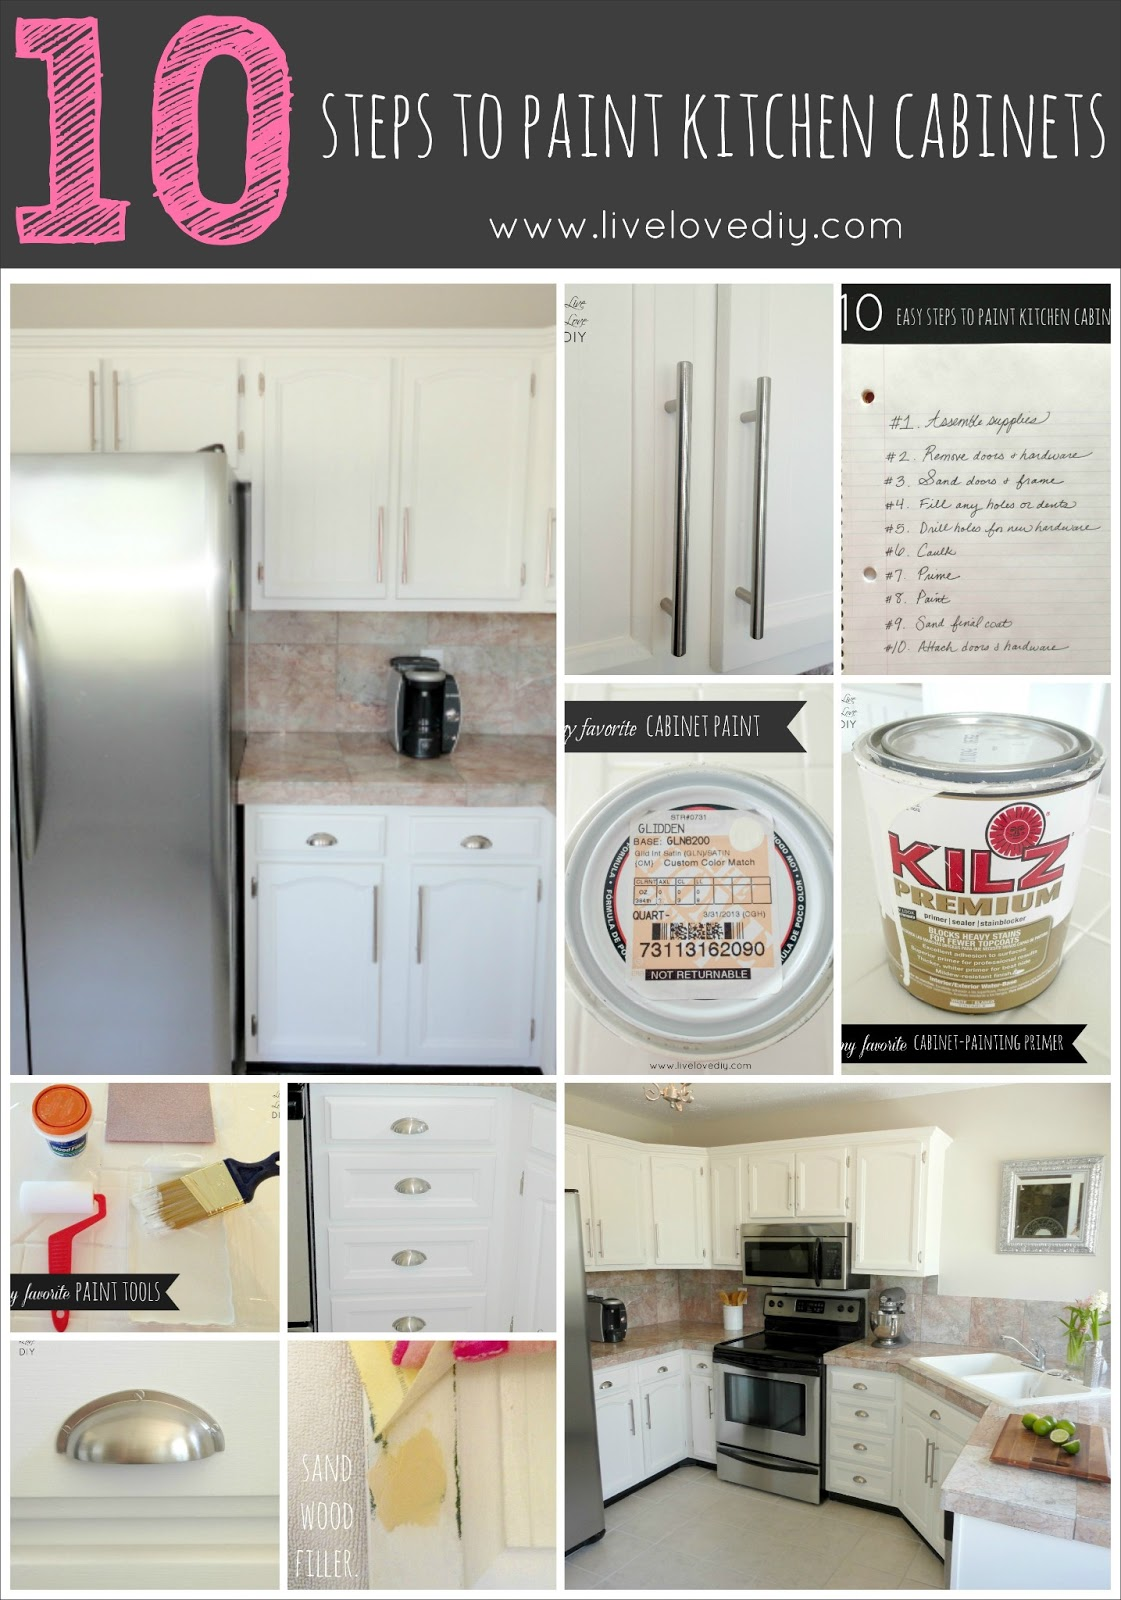 10 easy steps to paint kitchen cabinets painting kitchen cabinets white How To Paint Kitchen Cabinets in 10 Easy Steps